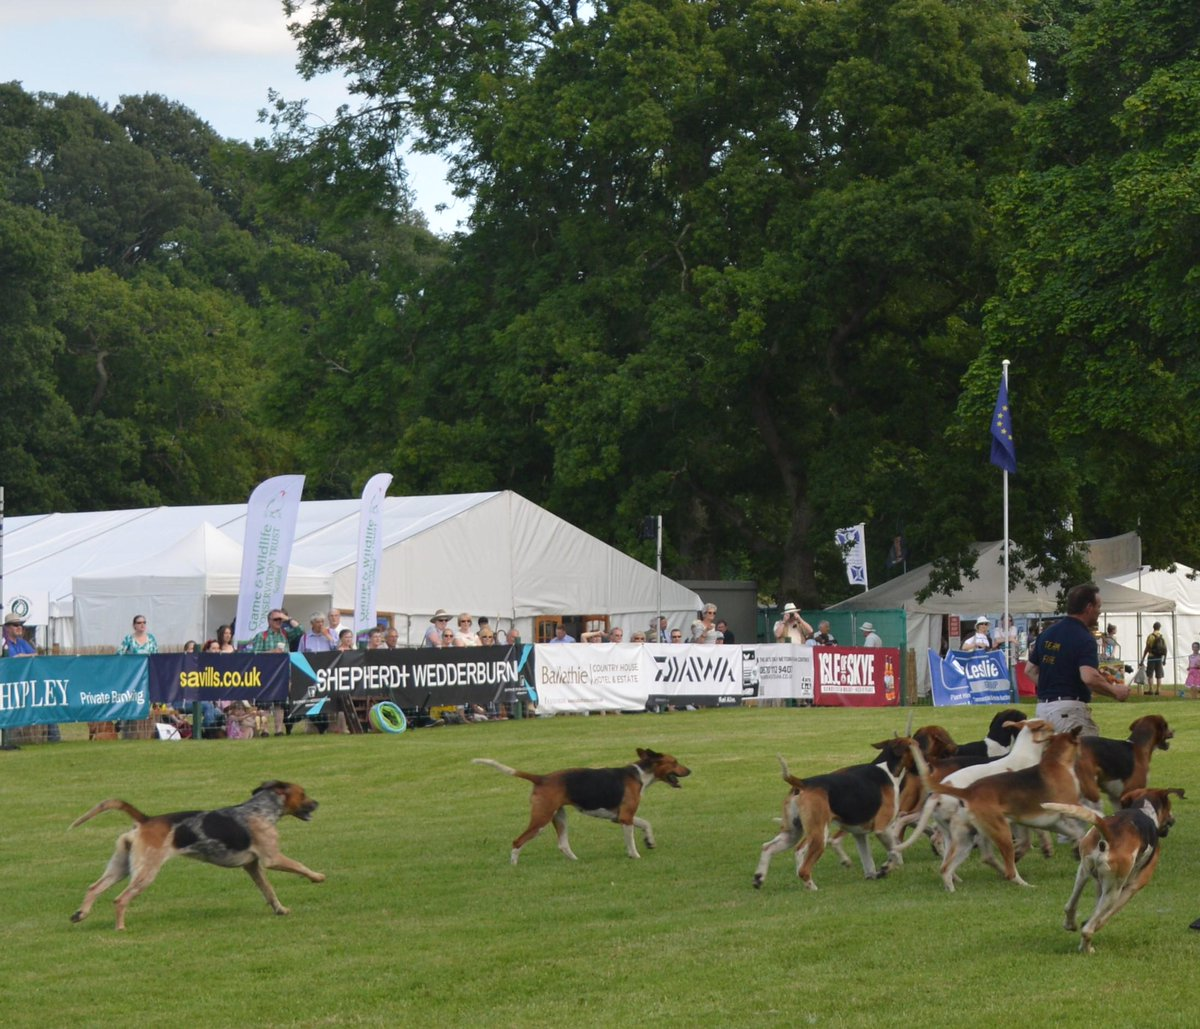 Fox hounds put on a show for the crowds at the Scottish Game Fair.   @ScotGameFair @SconePalace http://t.co/ykWreDlAyC